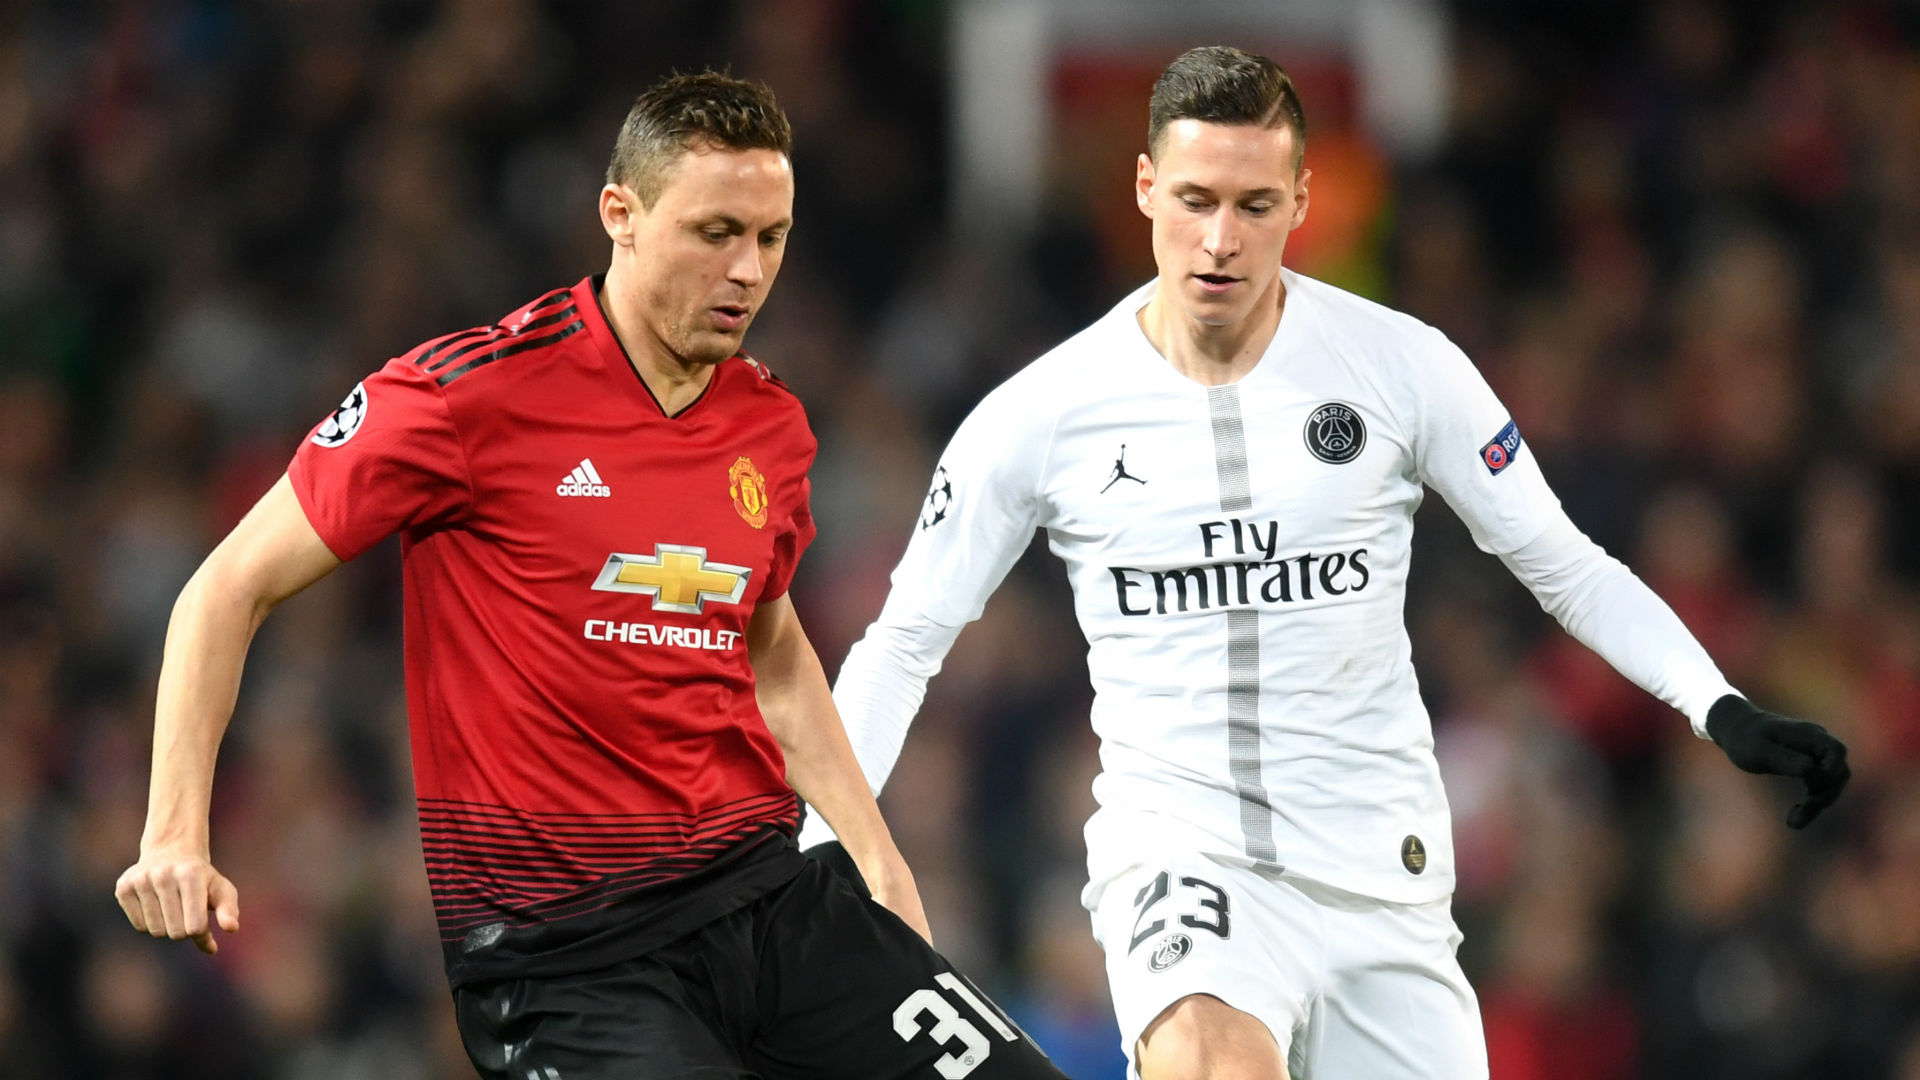 United can inflict more Champions League pain on PSG